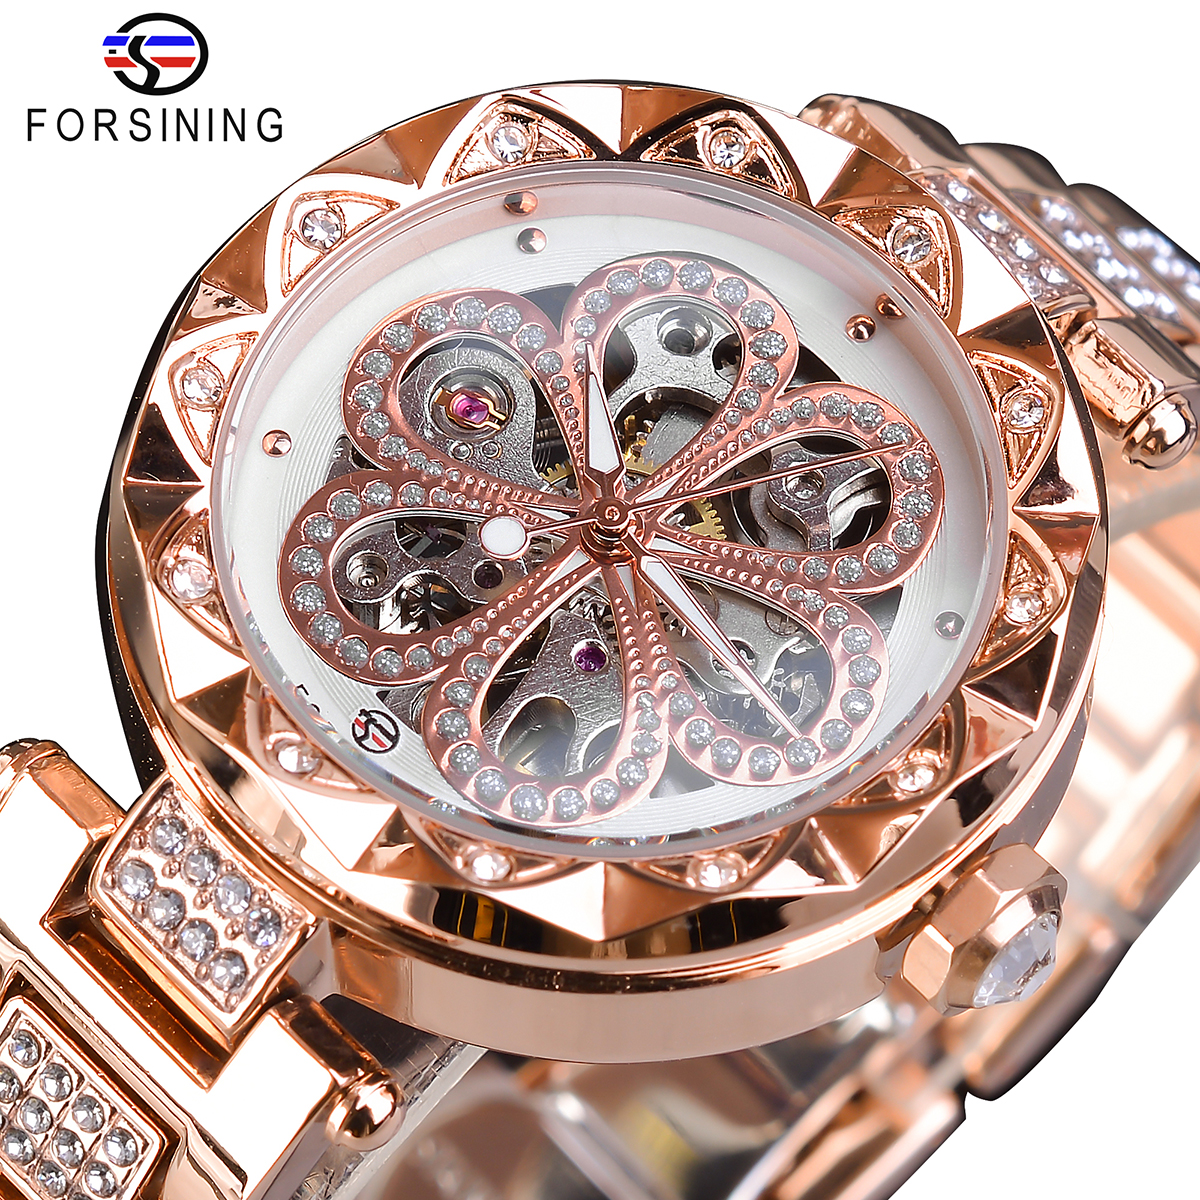 Forsining Fashion Women Watch Top Brand Diamond Female Wristwatch Automatic Machanical Watches Waterproof Luminous Hands Clock